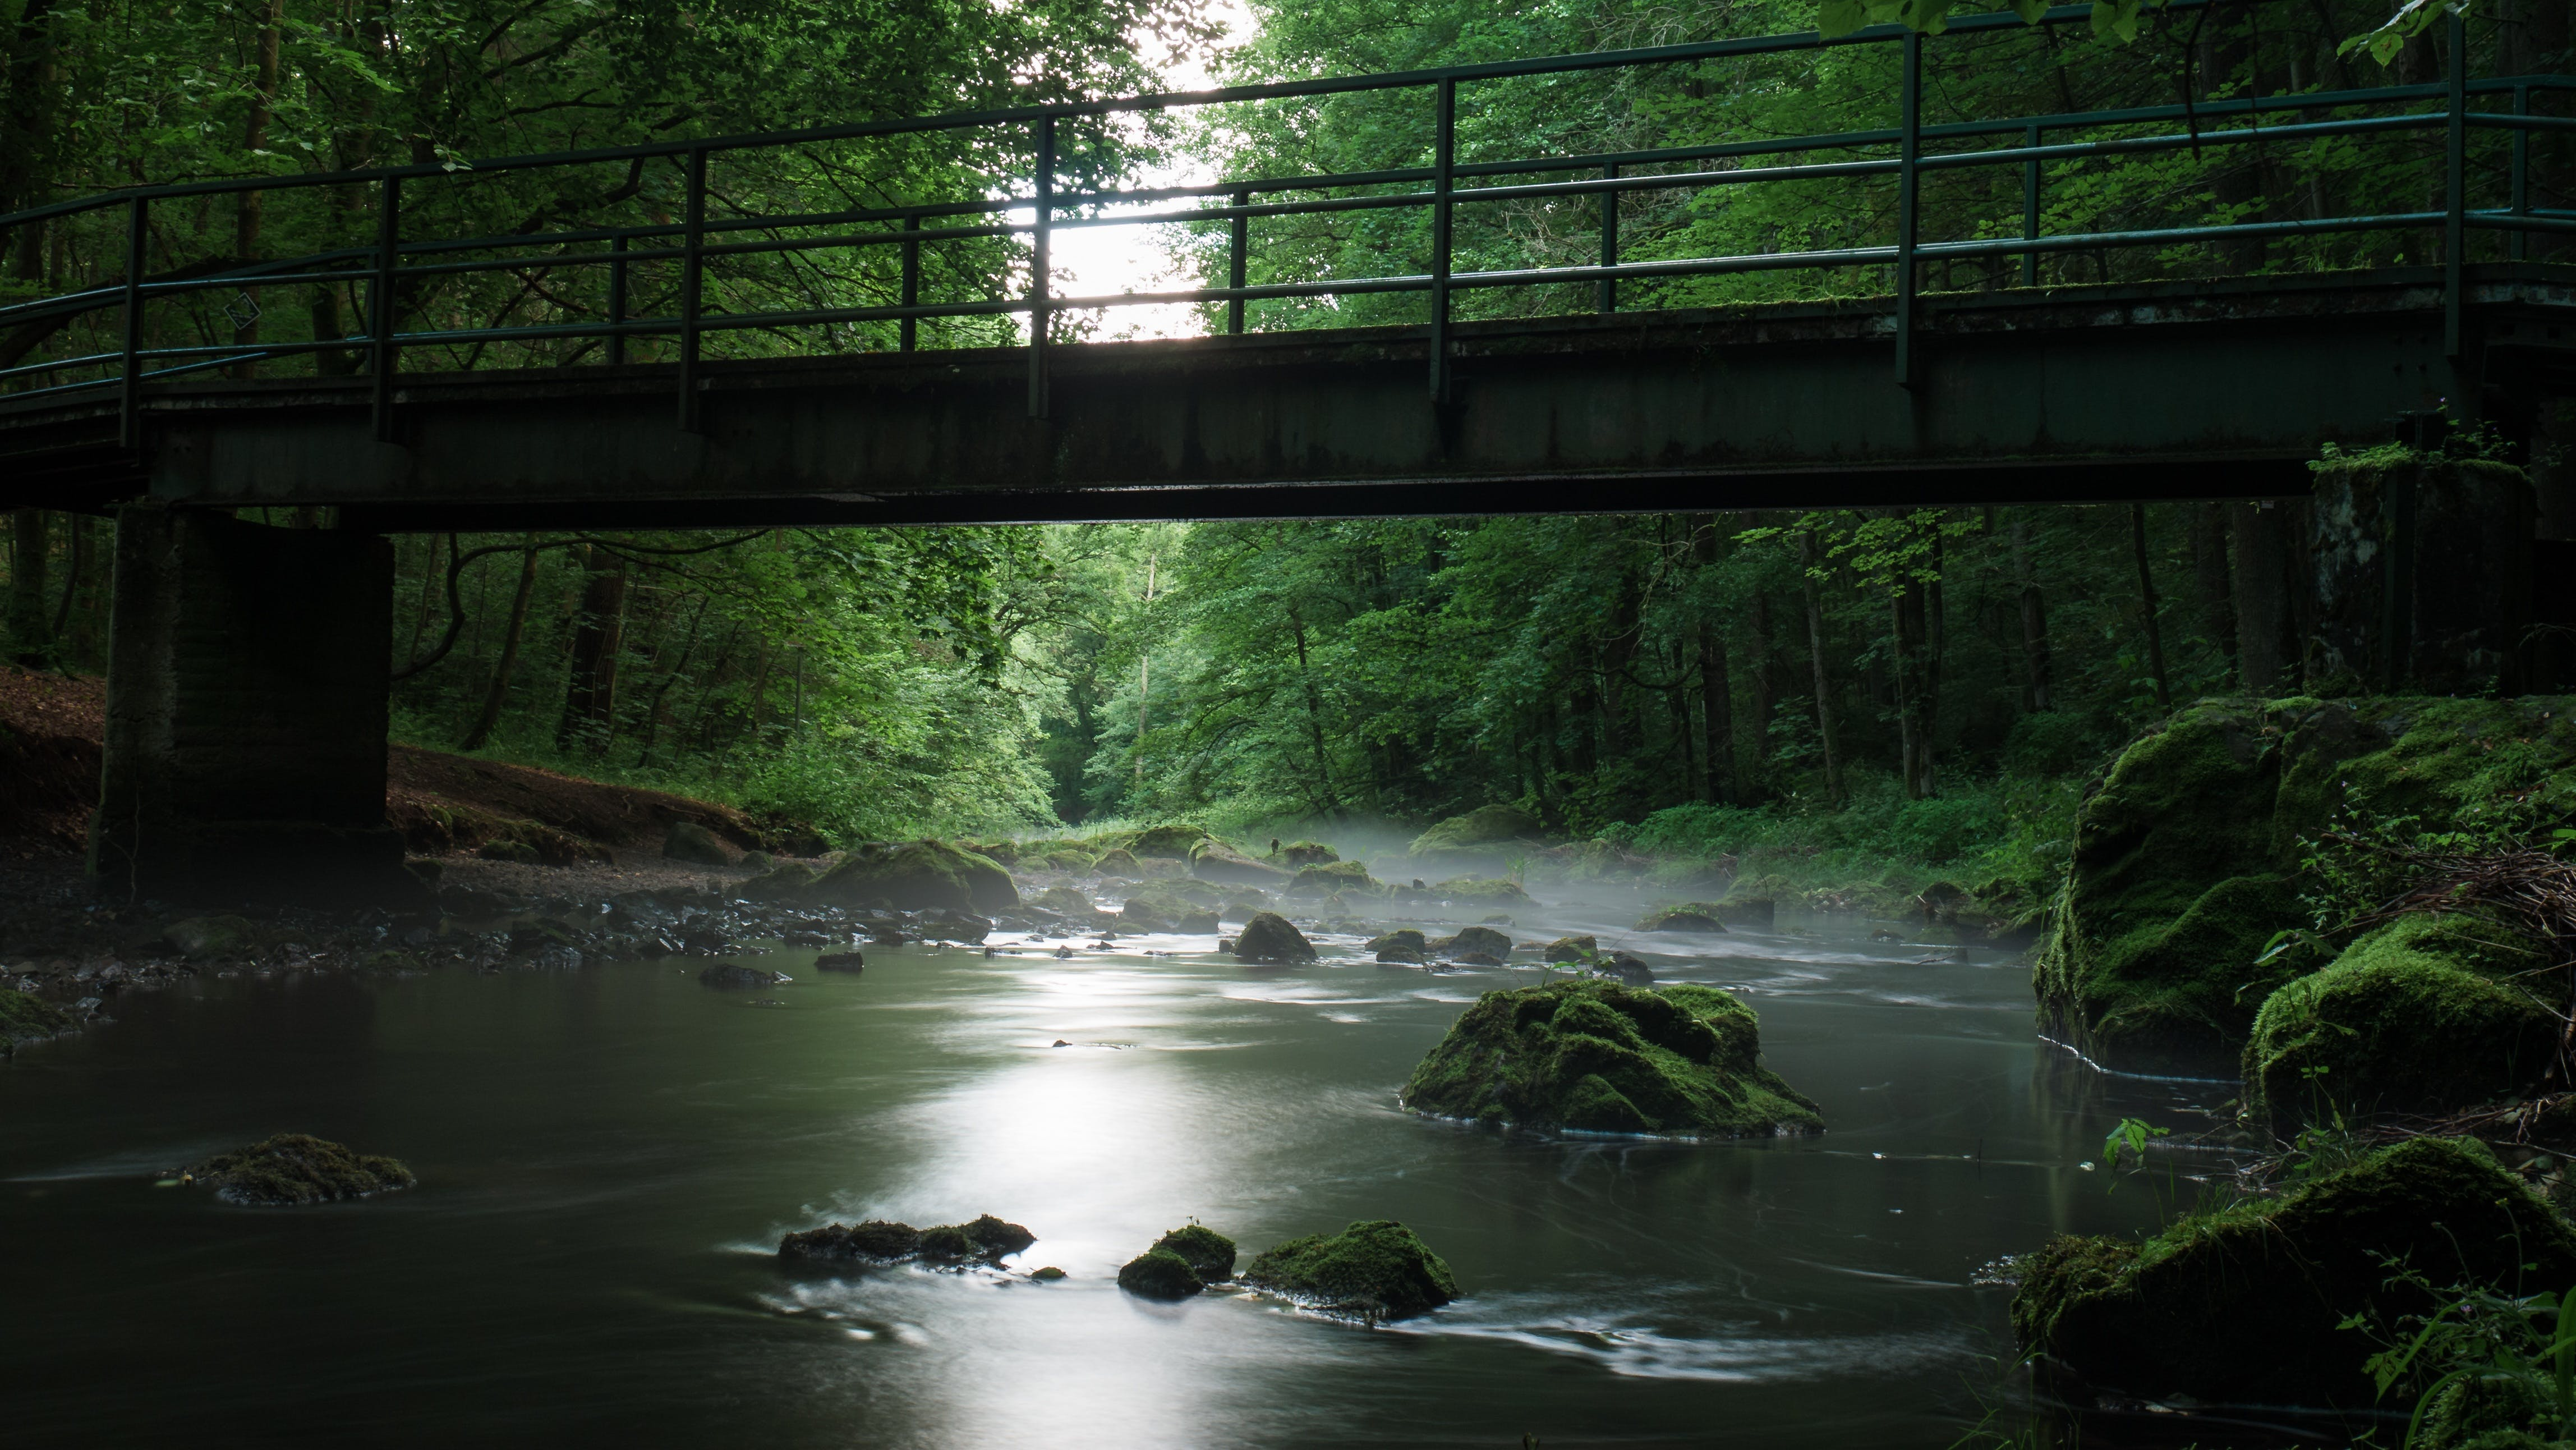 River With Rocks Under Bridge Surrounded by Green Leaf Trees during Daytime